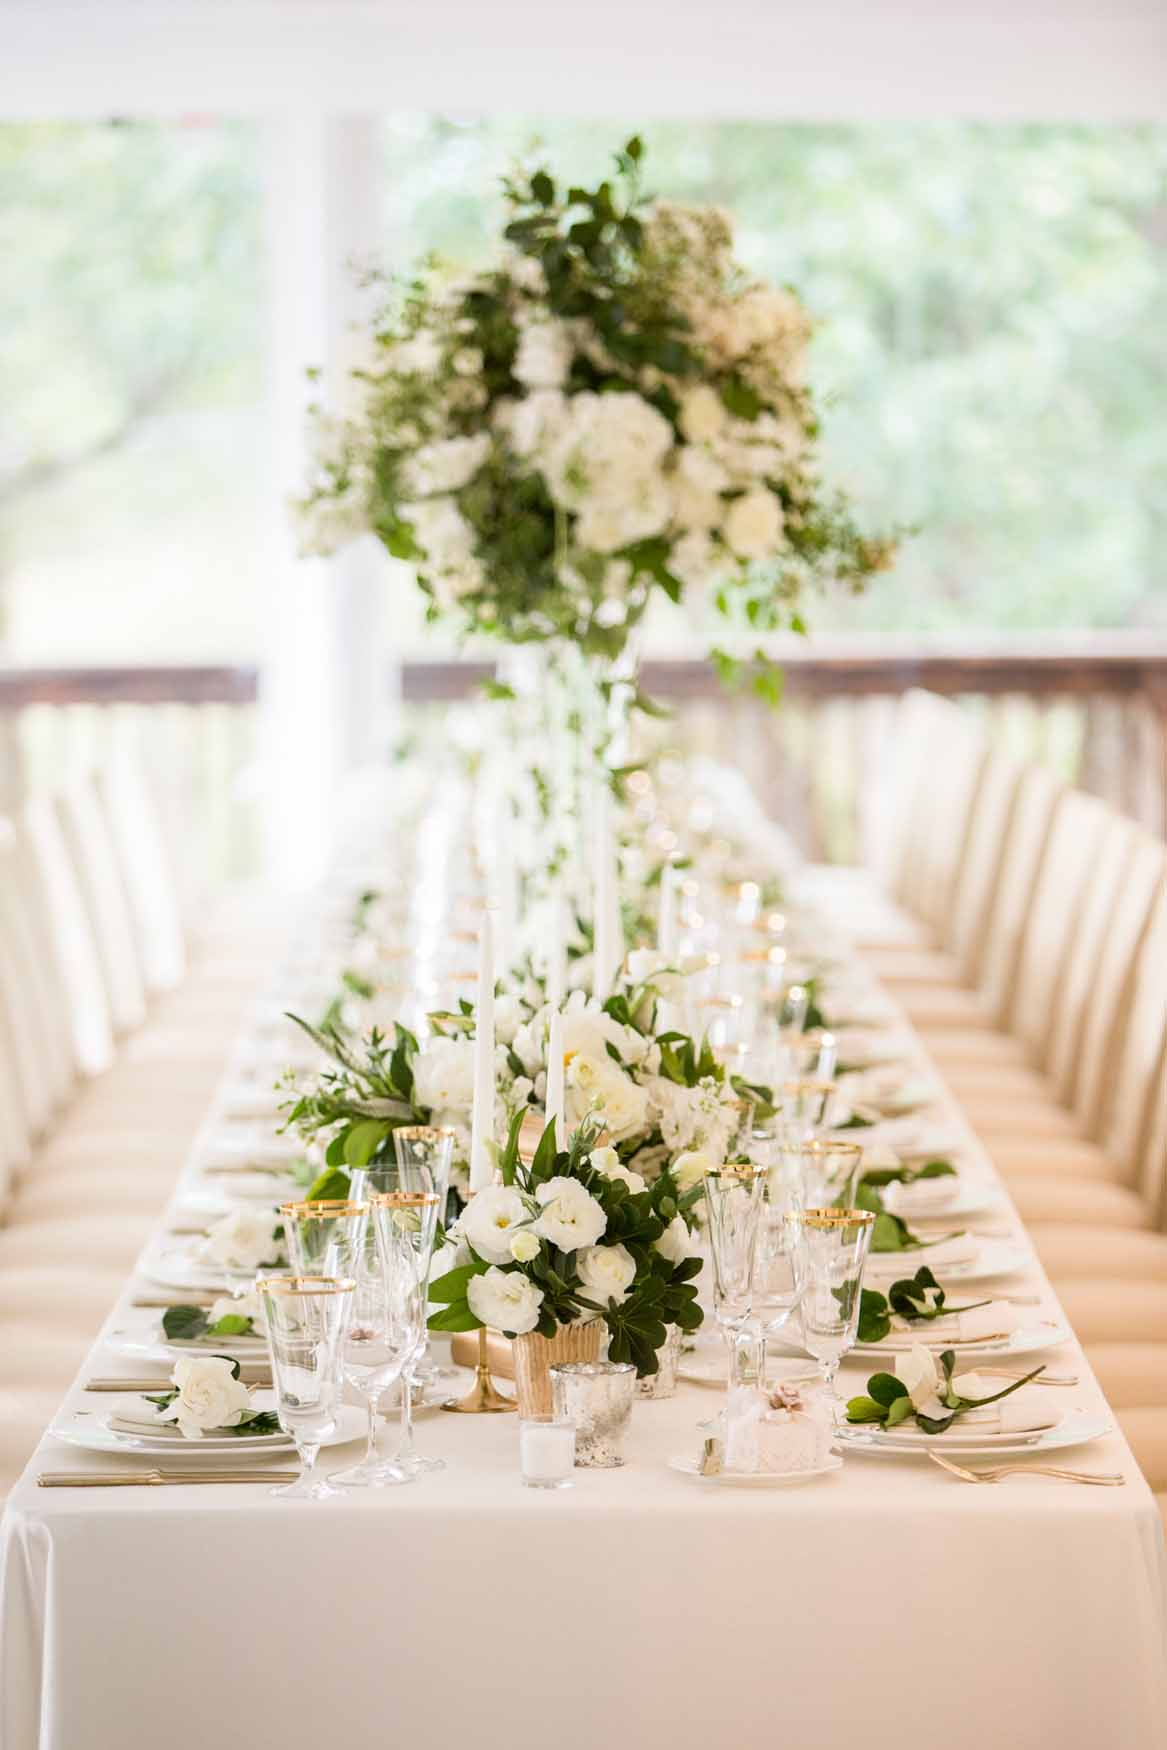 Tall centerpieces with white flowers and greenery lining long tables - Elegant Summer Private Estate Wedding. Flora Nova Design Seattle